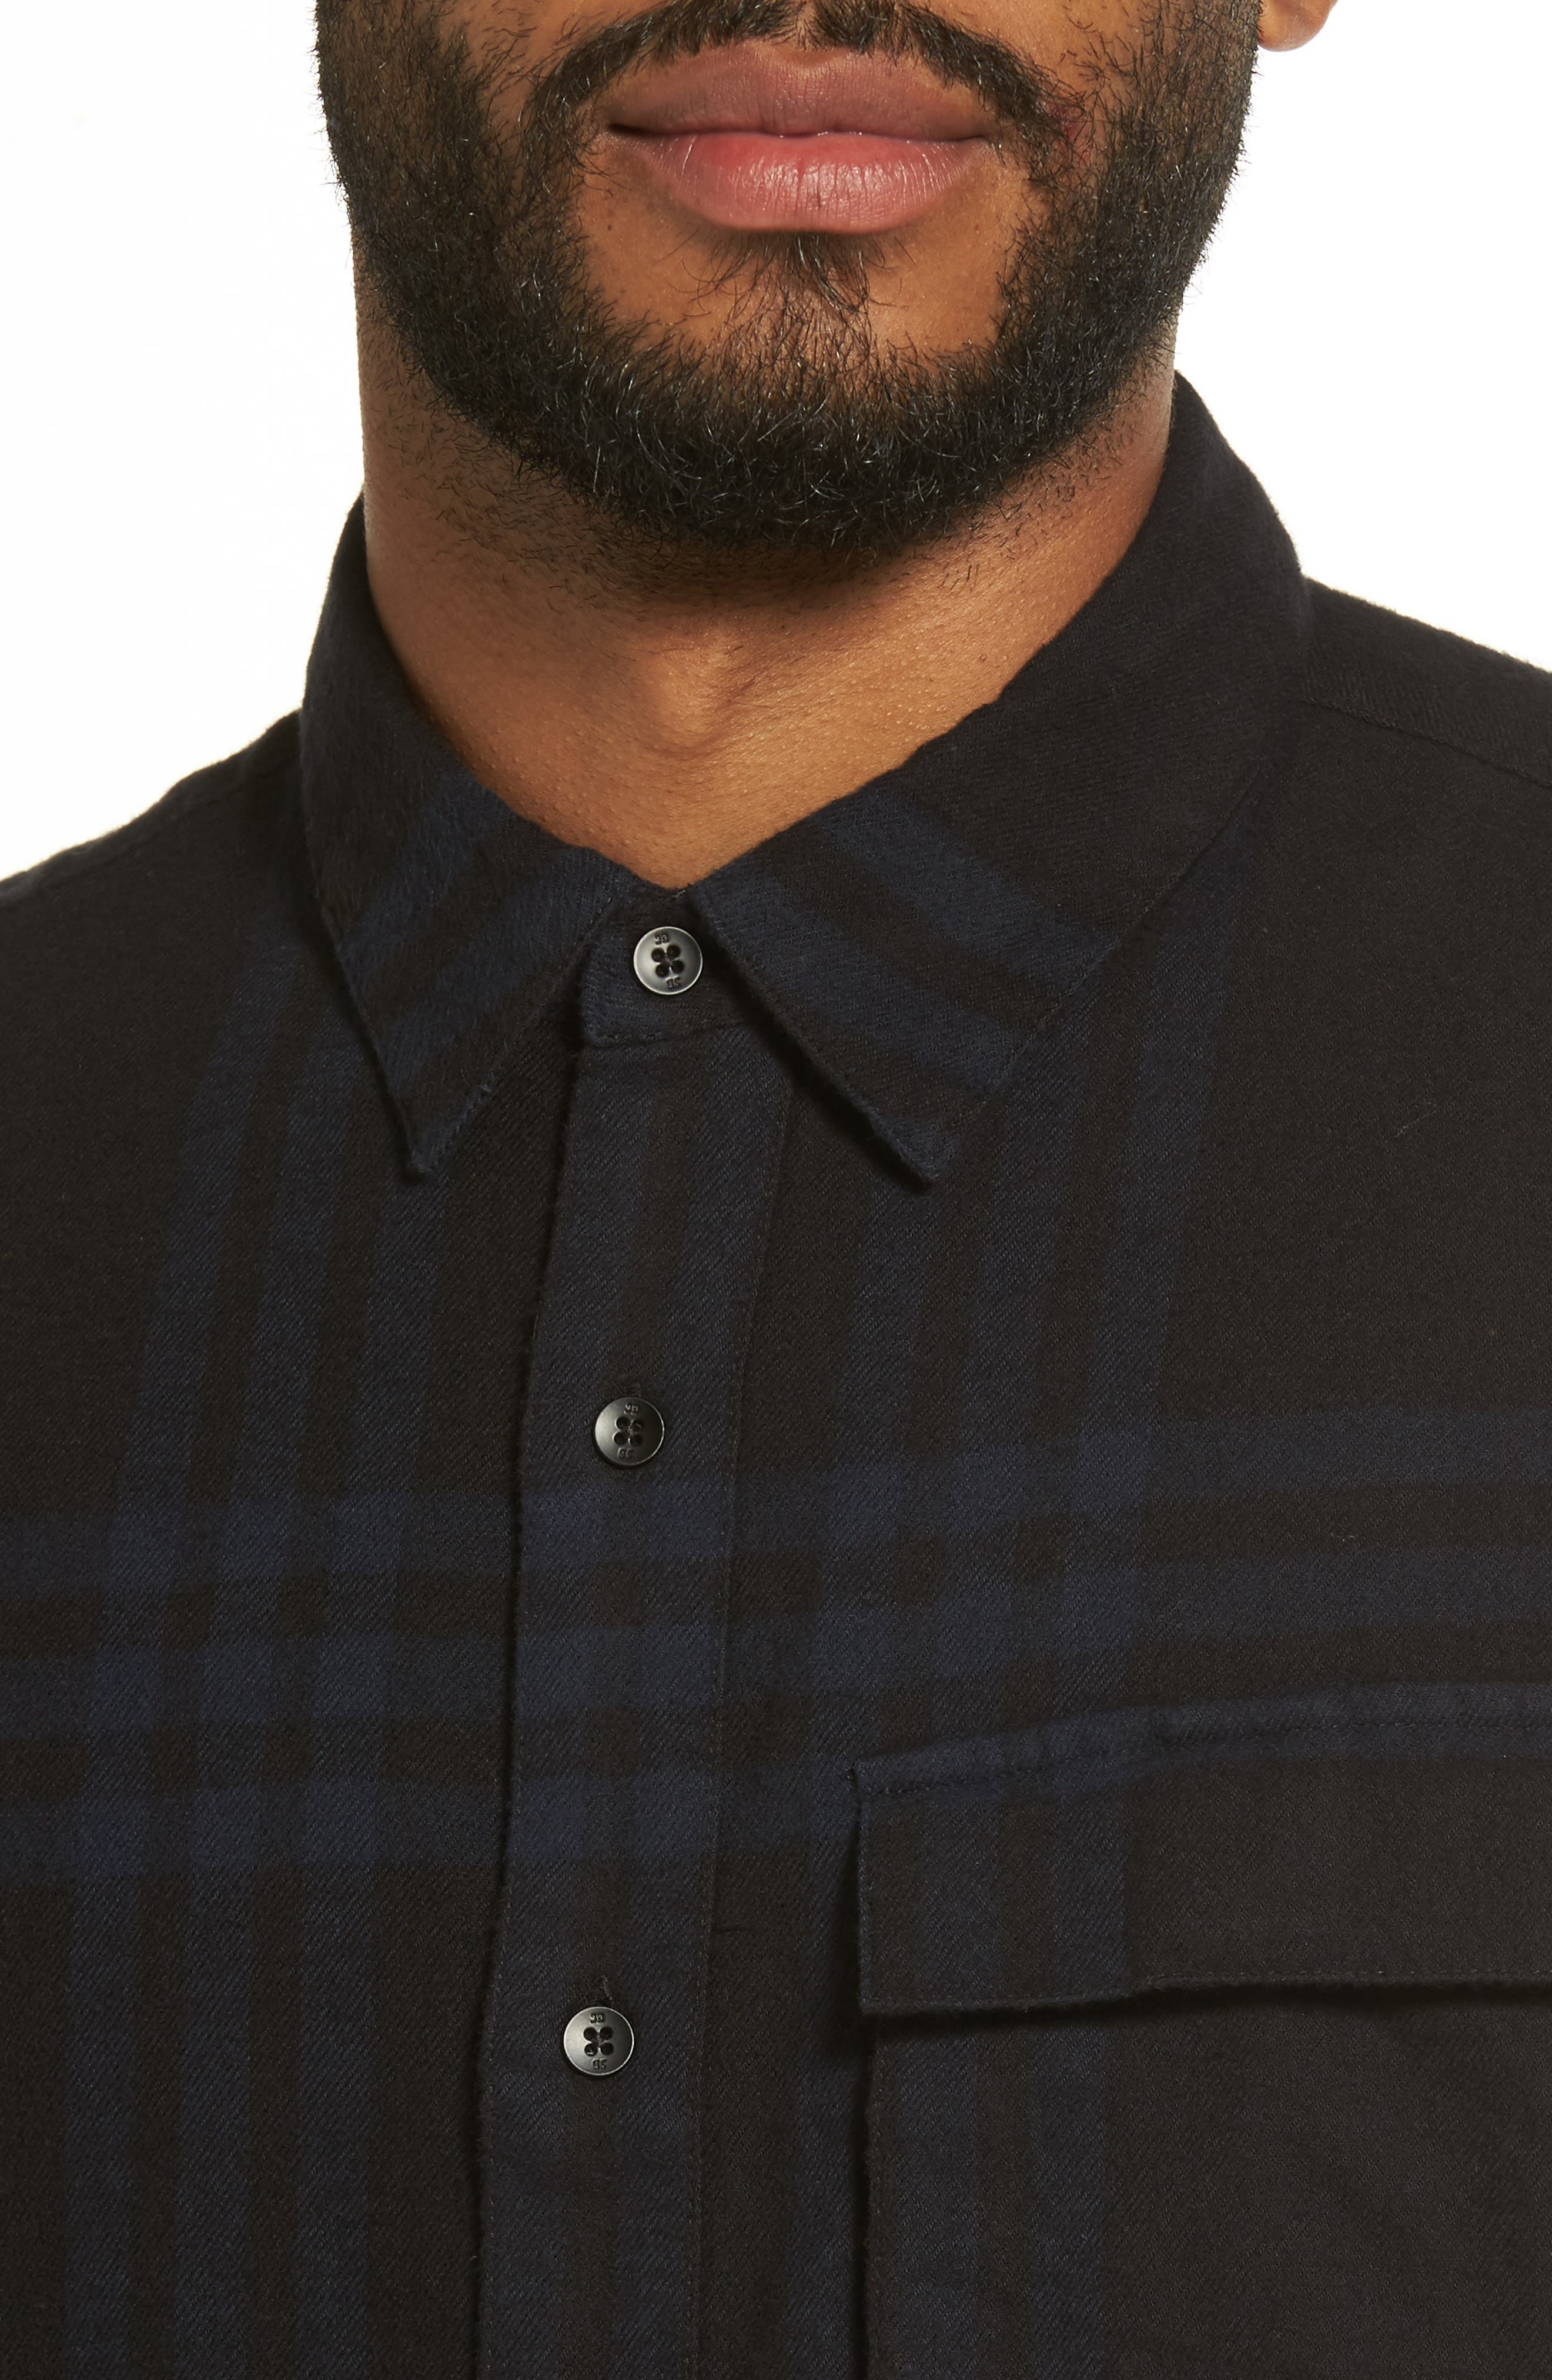 Bellowed Plaid Classic Shirt,                             Alternate thumbnail 8, color,